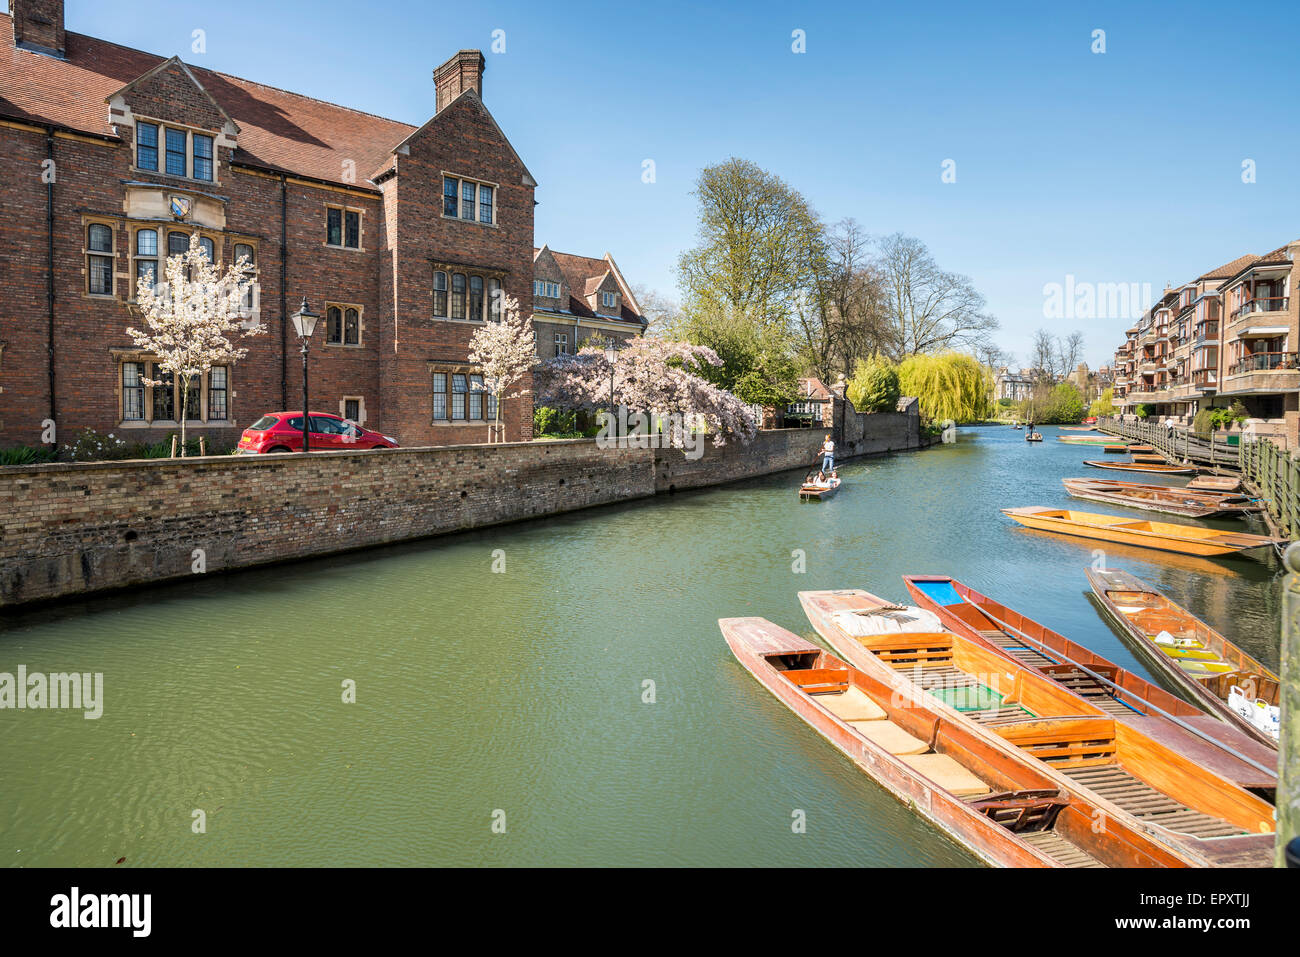 Punts at rest on the River Cam in Cambridge, UK - Stock Image